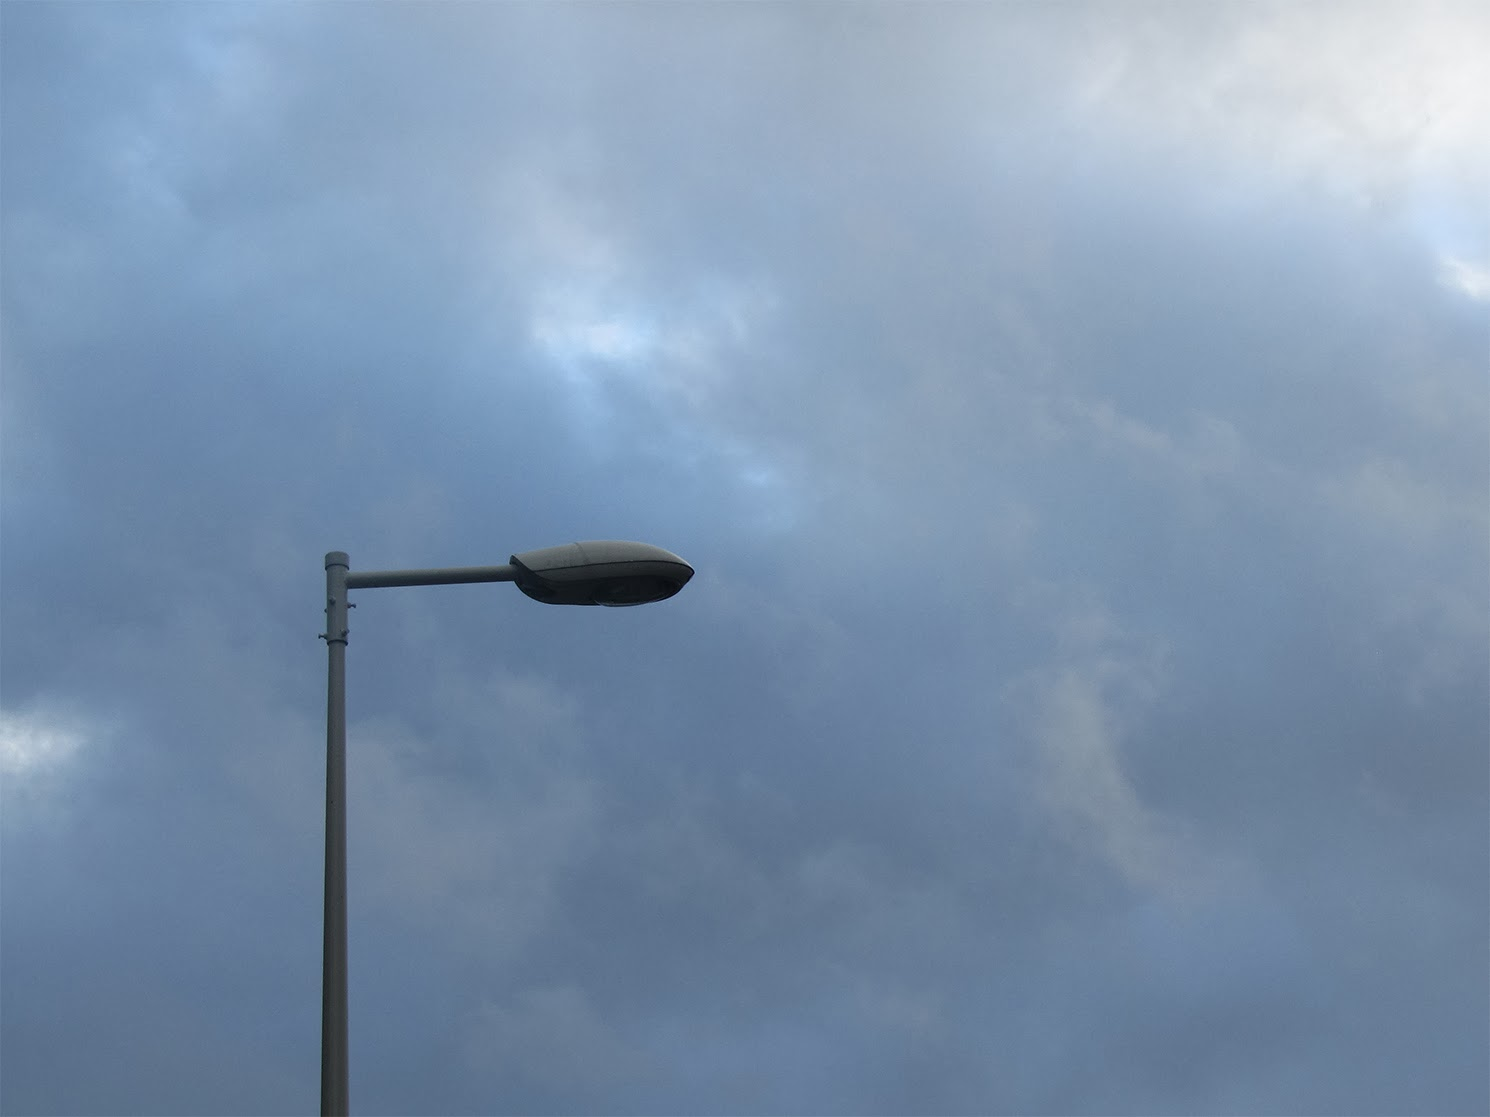 lamppost in front of threatening sky